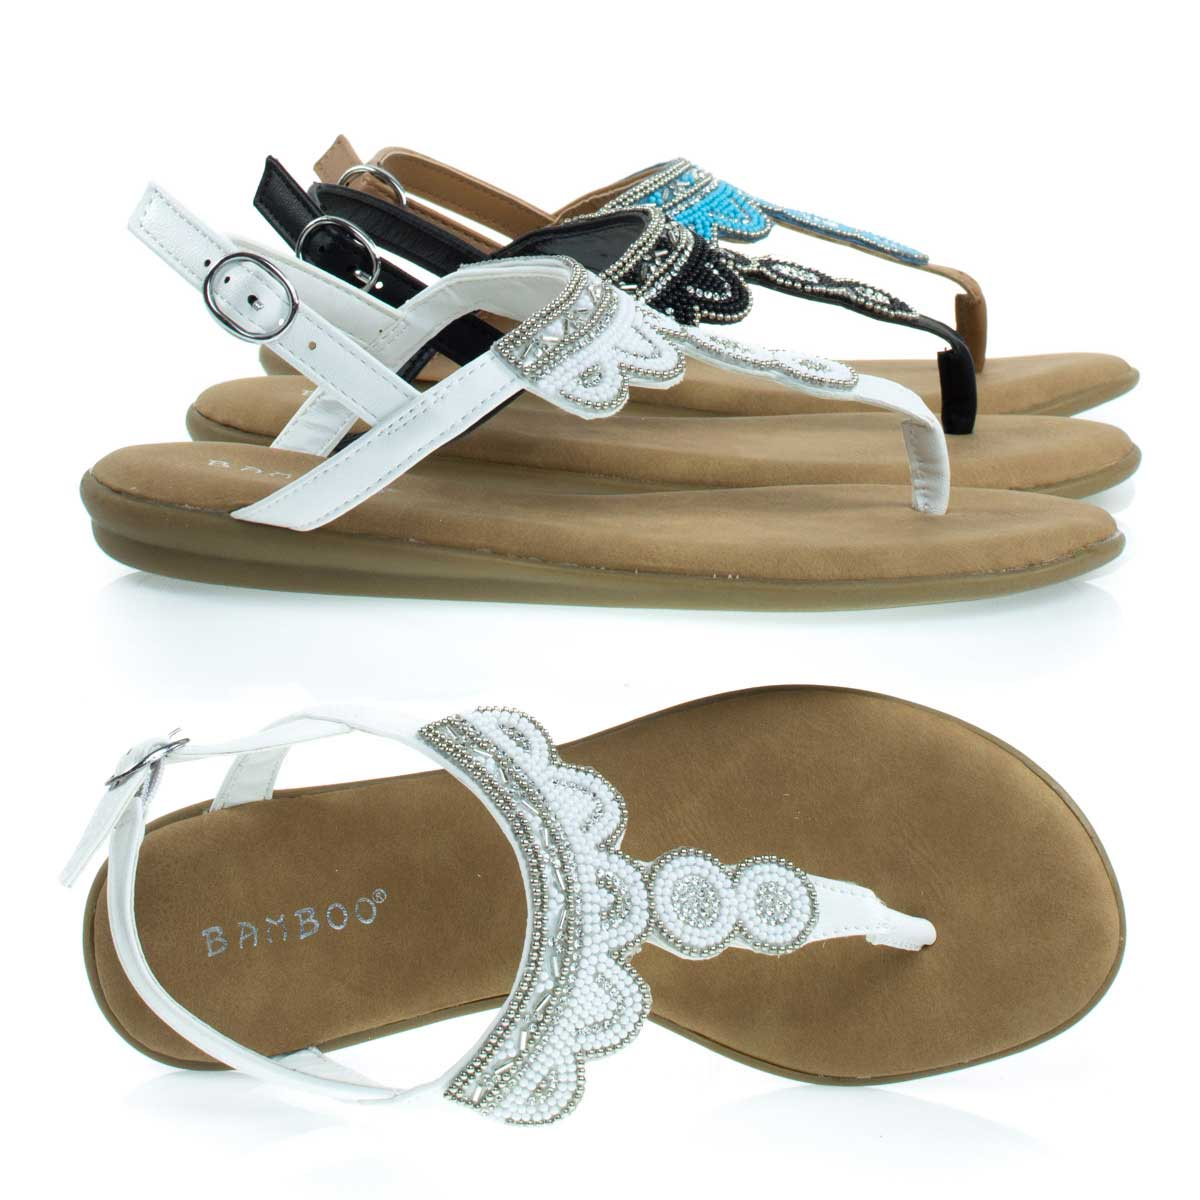 Tundra59 by Bamboo, Comfortable Padded Flat Sandal w Tribal Inspired Beads & Rhinestone